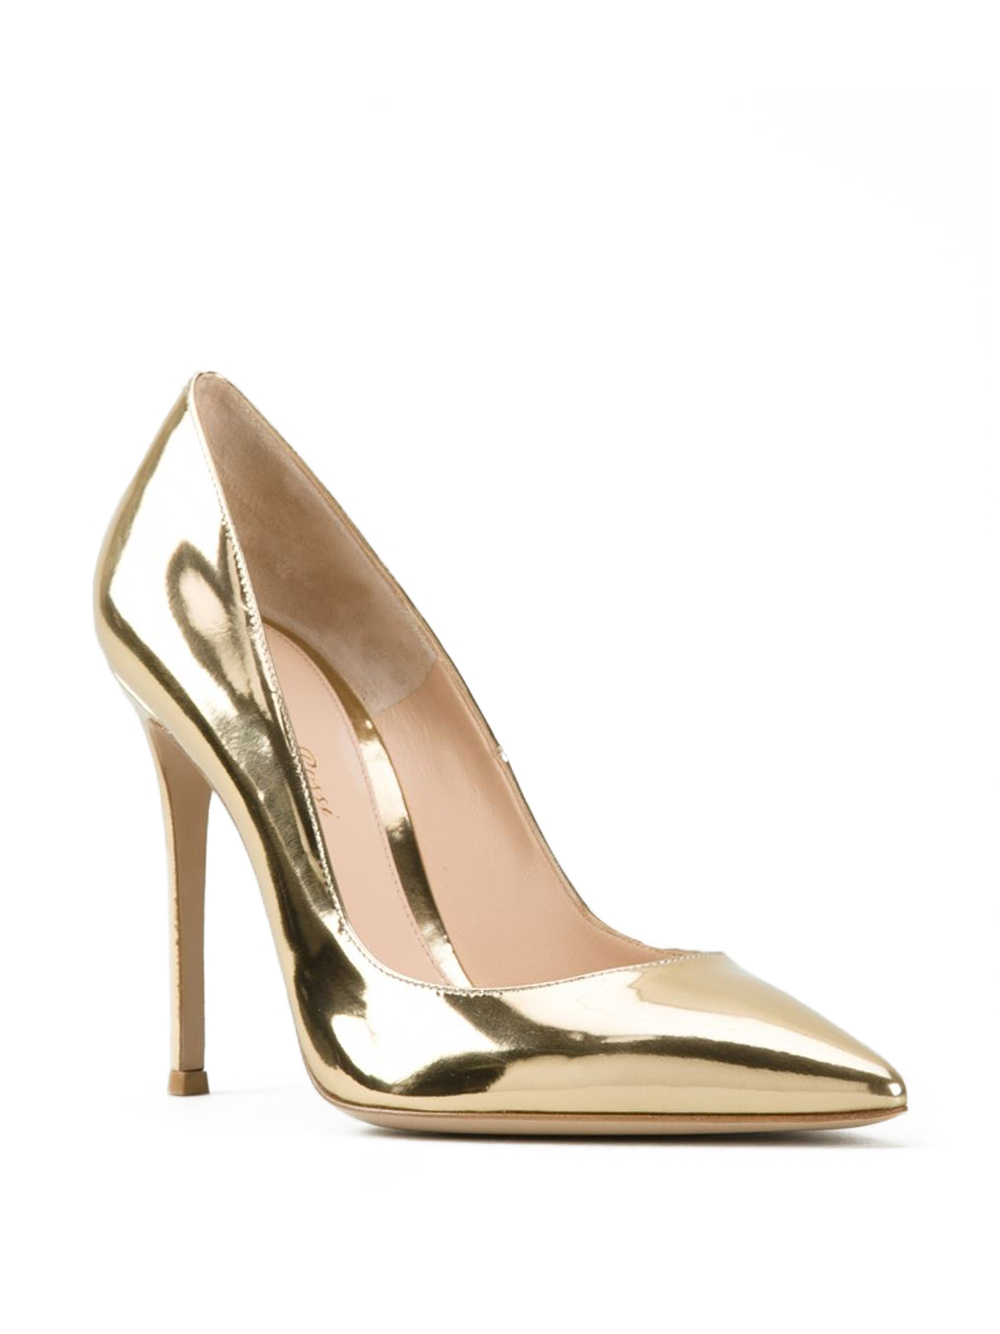 Lyst - Gianvito rossi Metallic Gold Pumps in Metallic